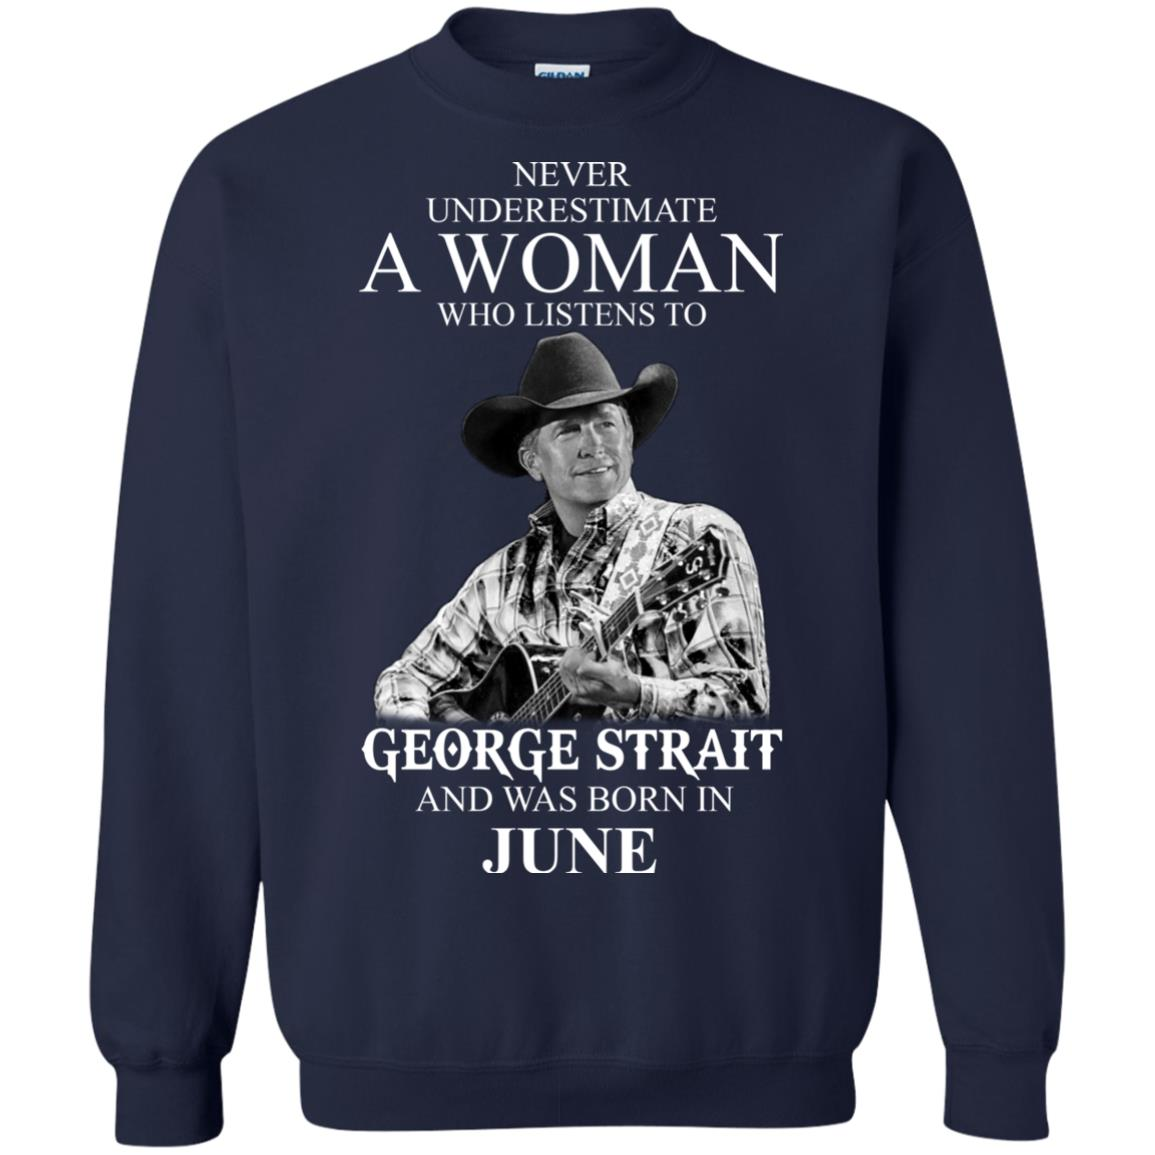 image 489 - Never Underestimate A Woman Who Listens To George Strait And Was Born In June shirt